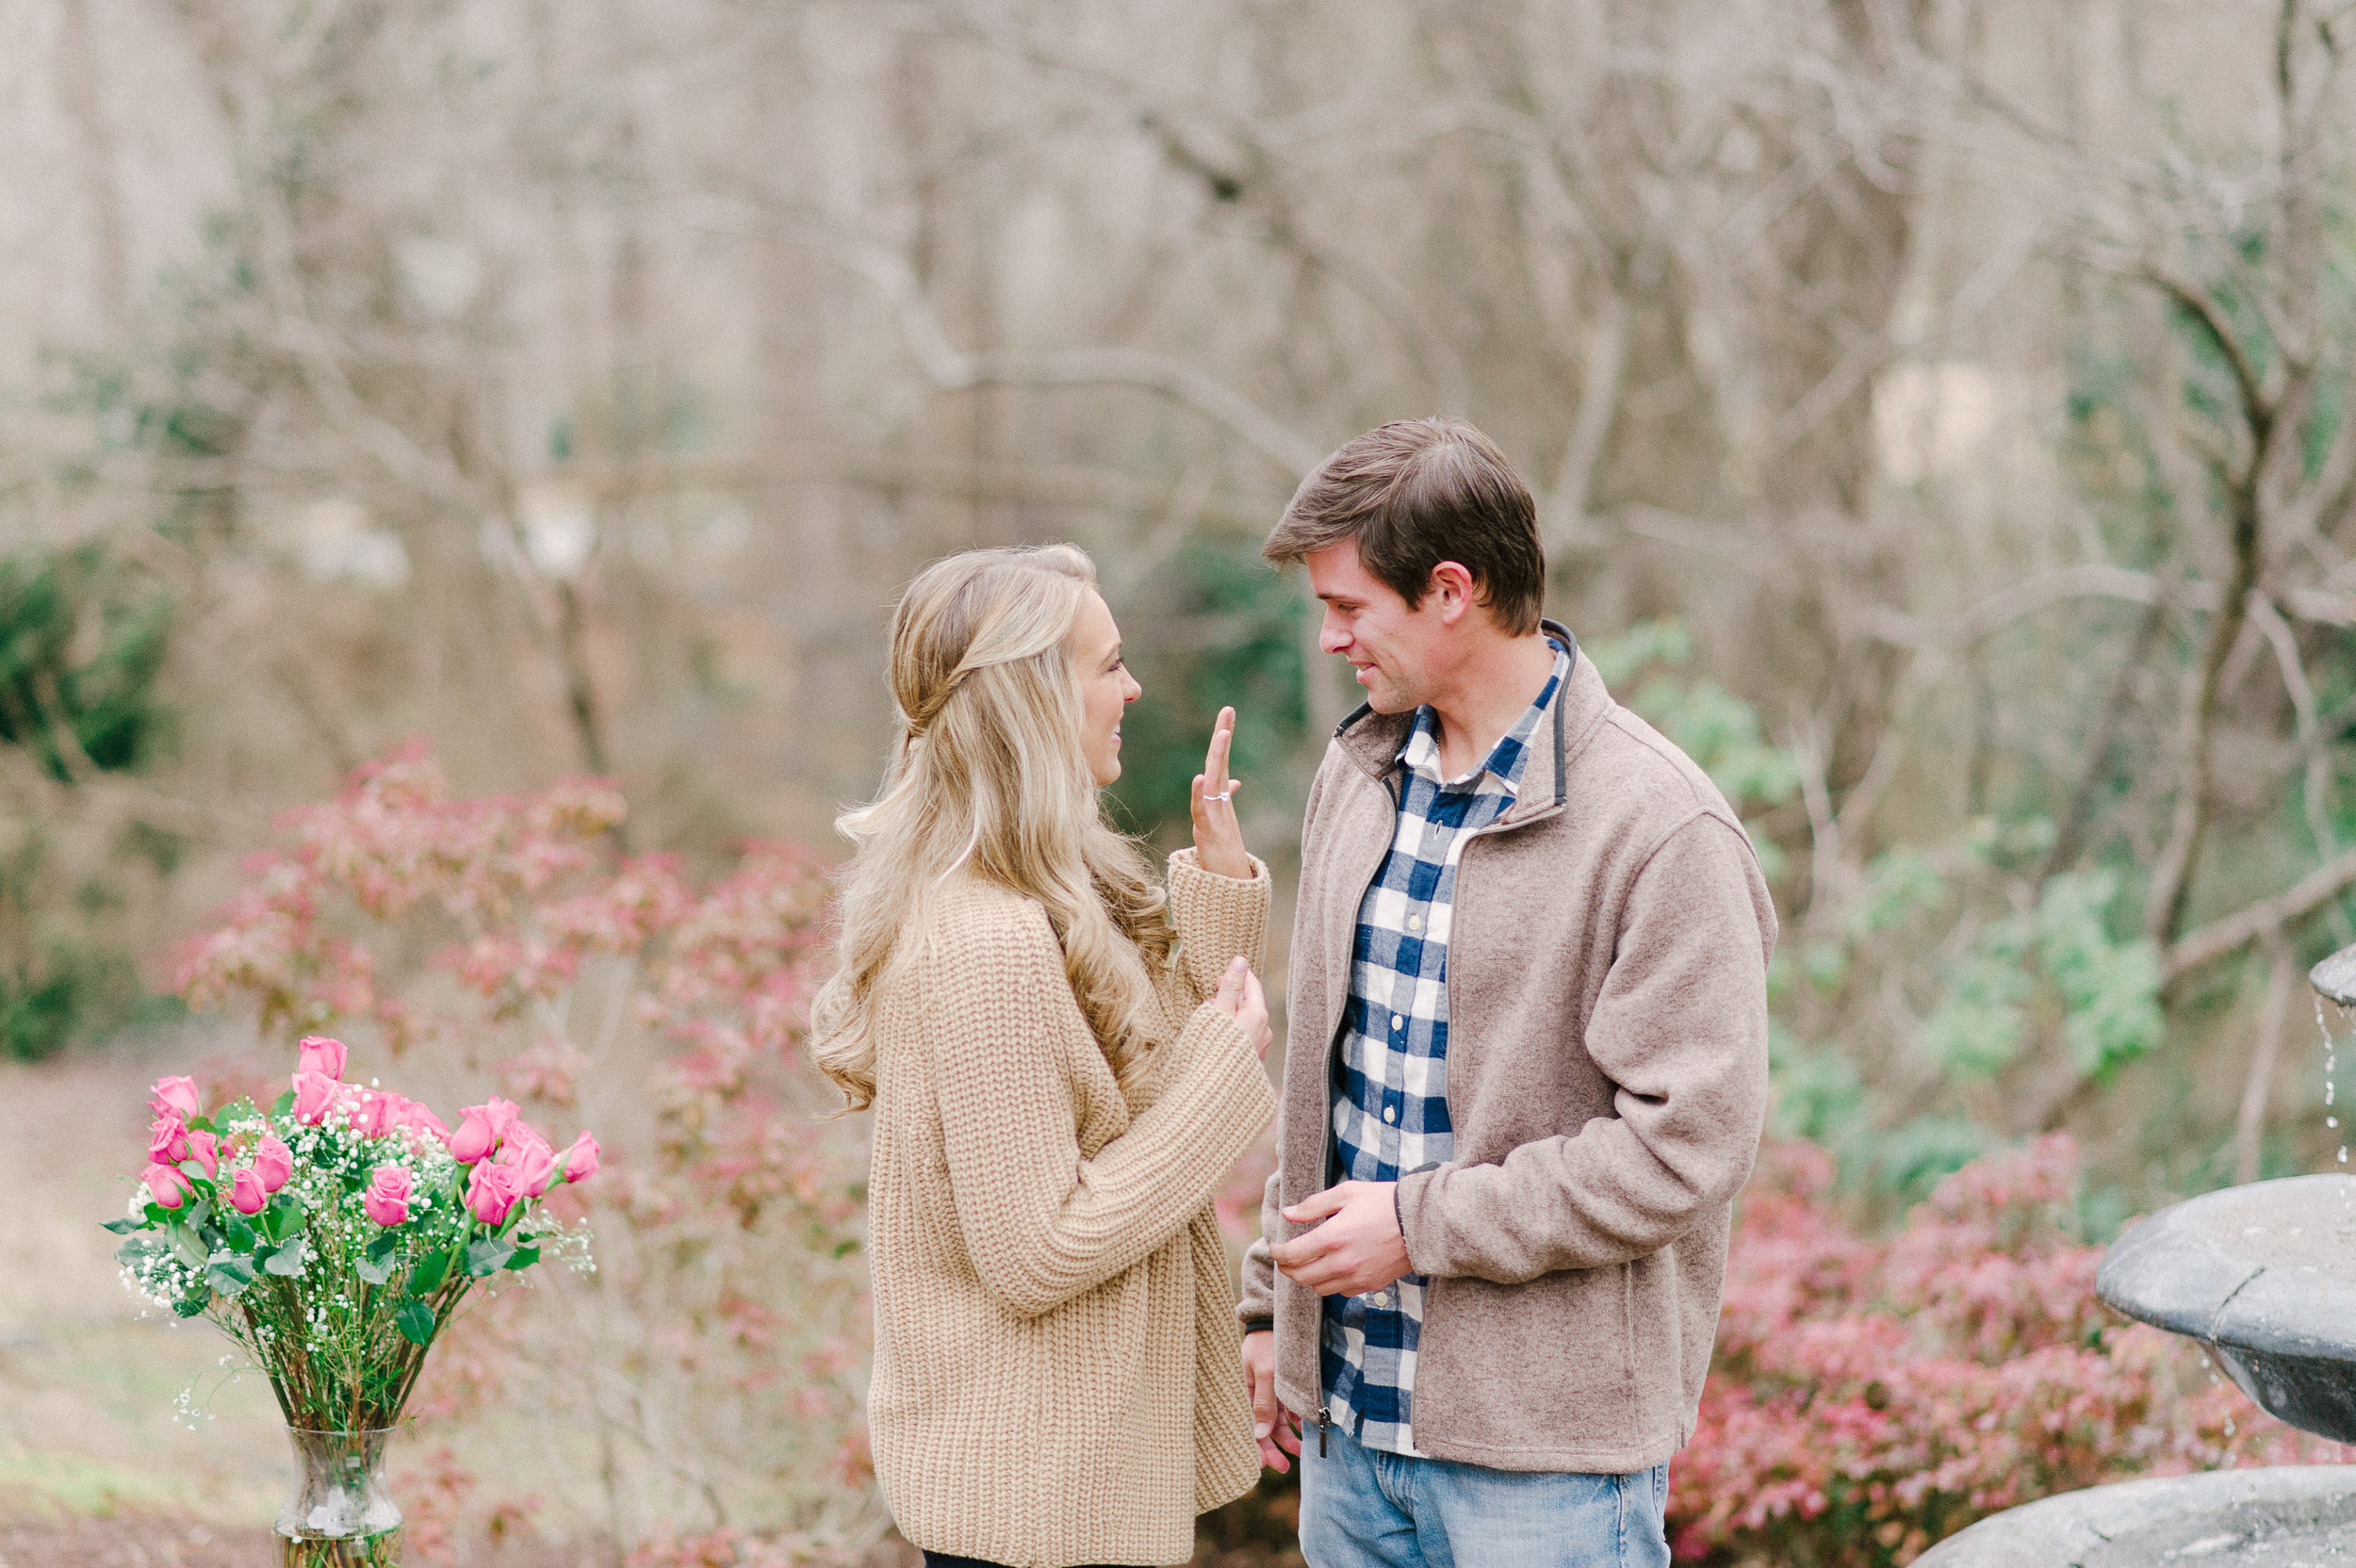 Hannah-forsberg-engagement-proposal-photographer-atlanta-15.jpg